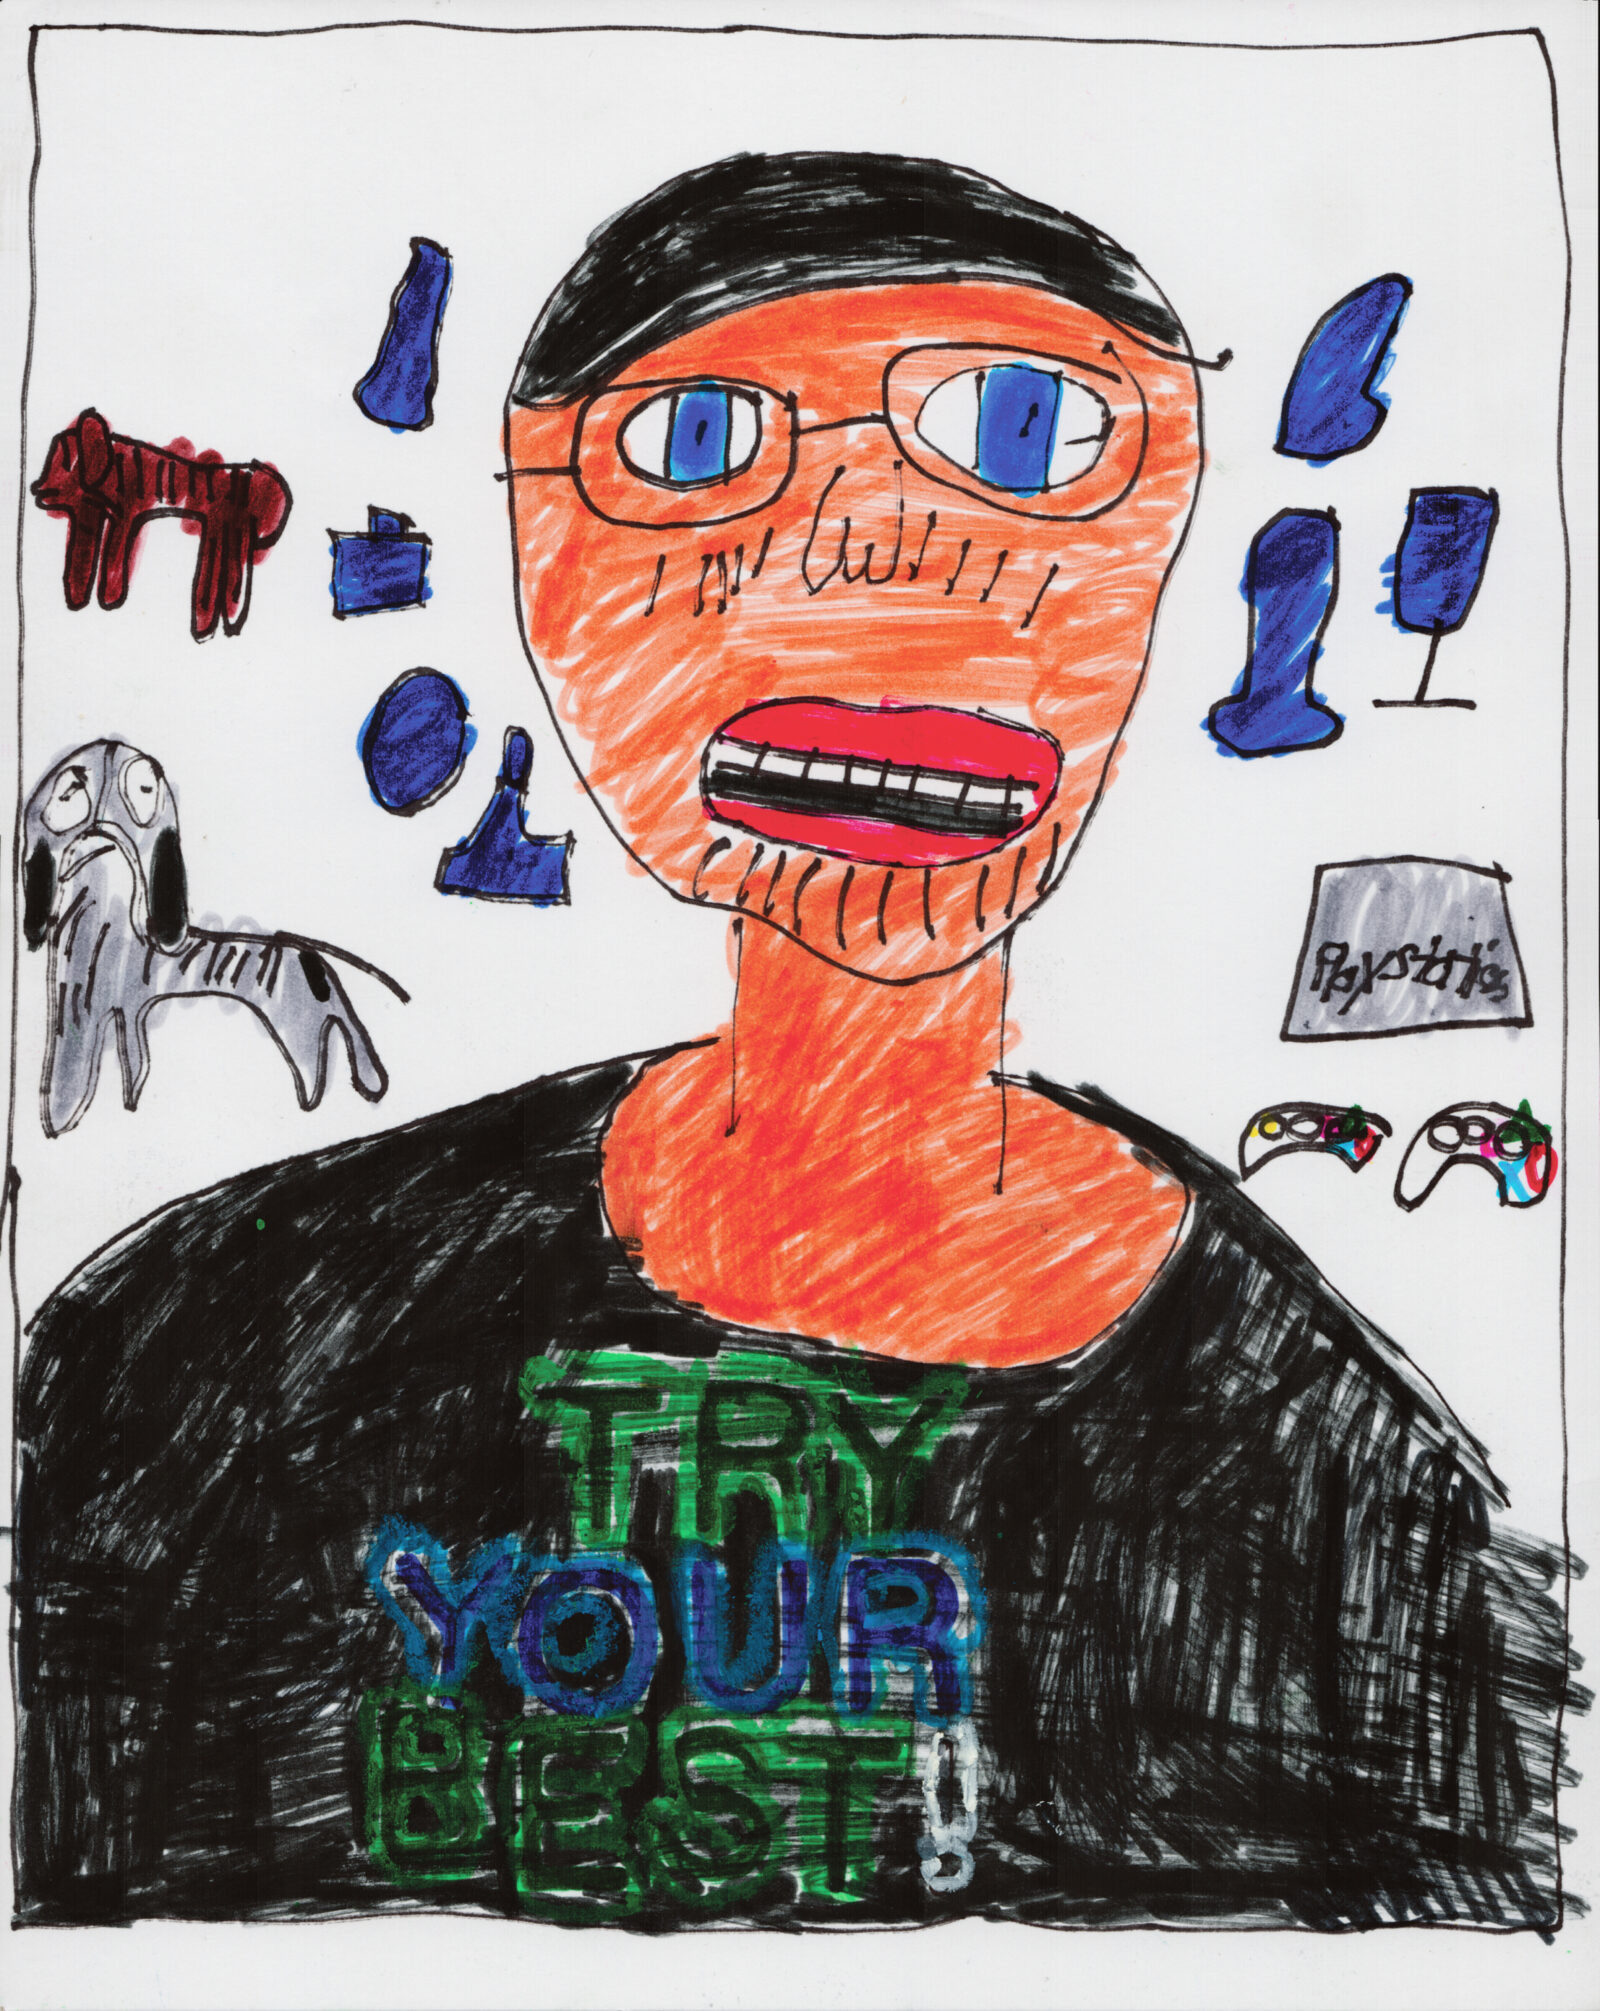 A drawing of a man with blue eyes and glasses. There are dogs and a Playstation behind him.